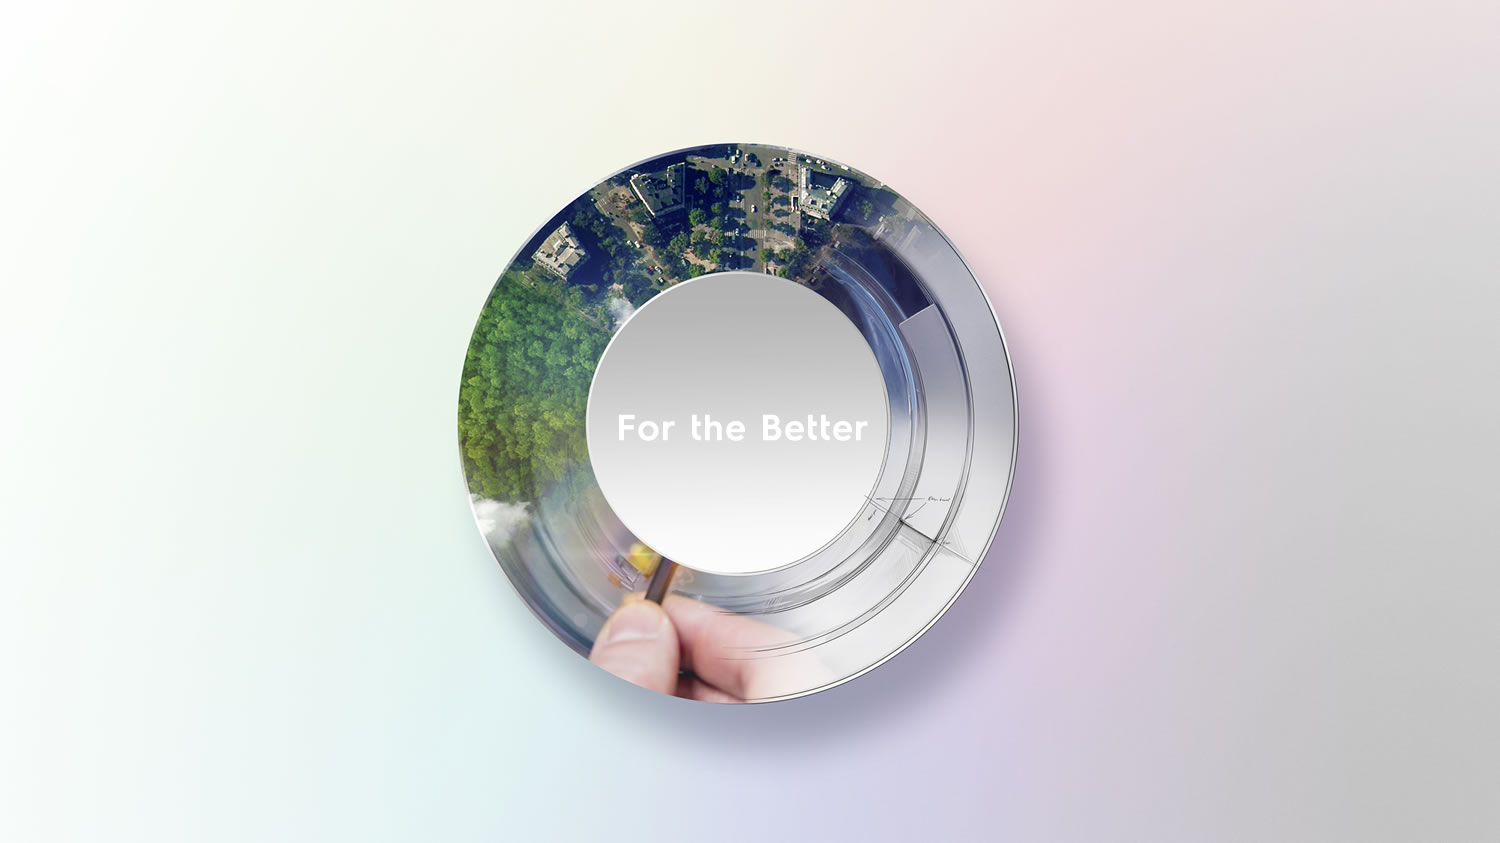 Better sustainable solutions